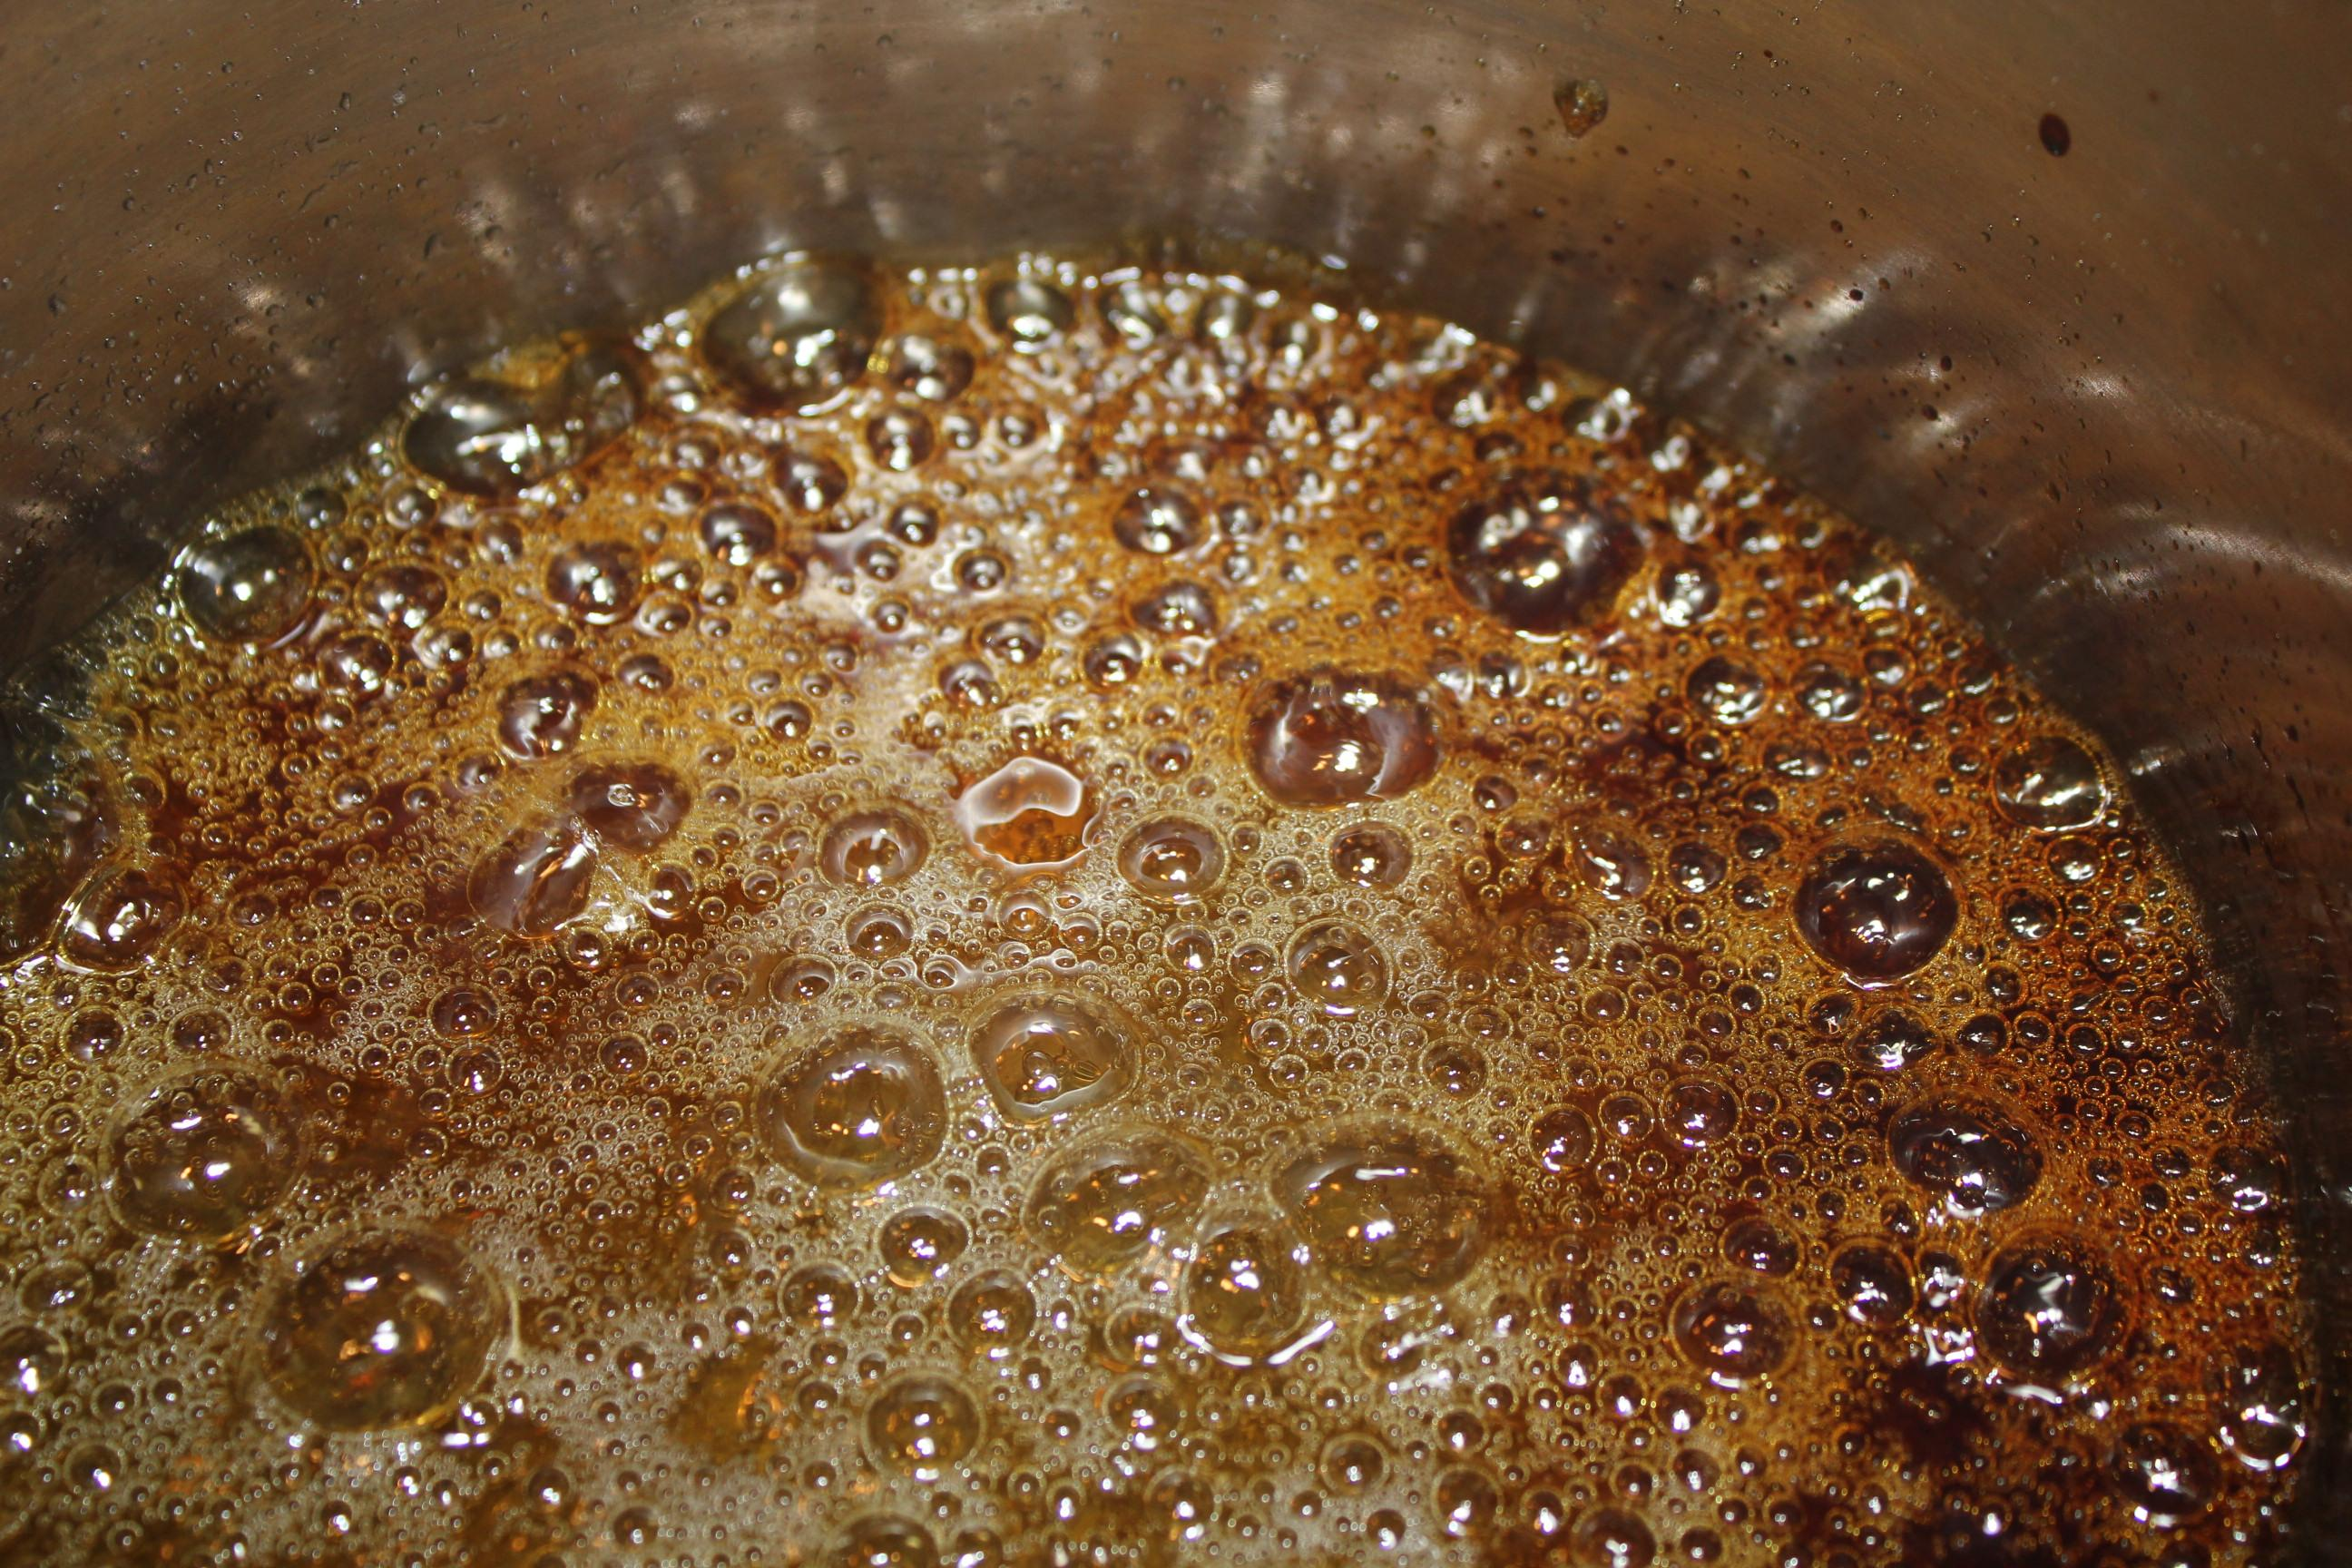 Sugar caramelizing into a deep golden color